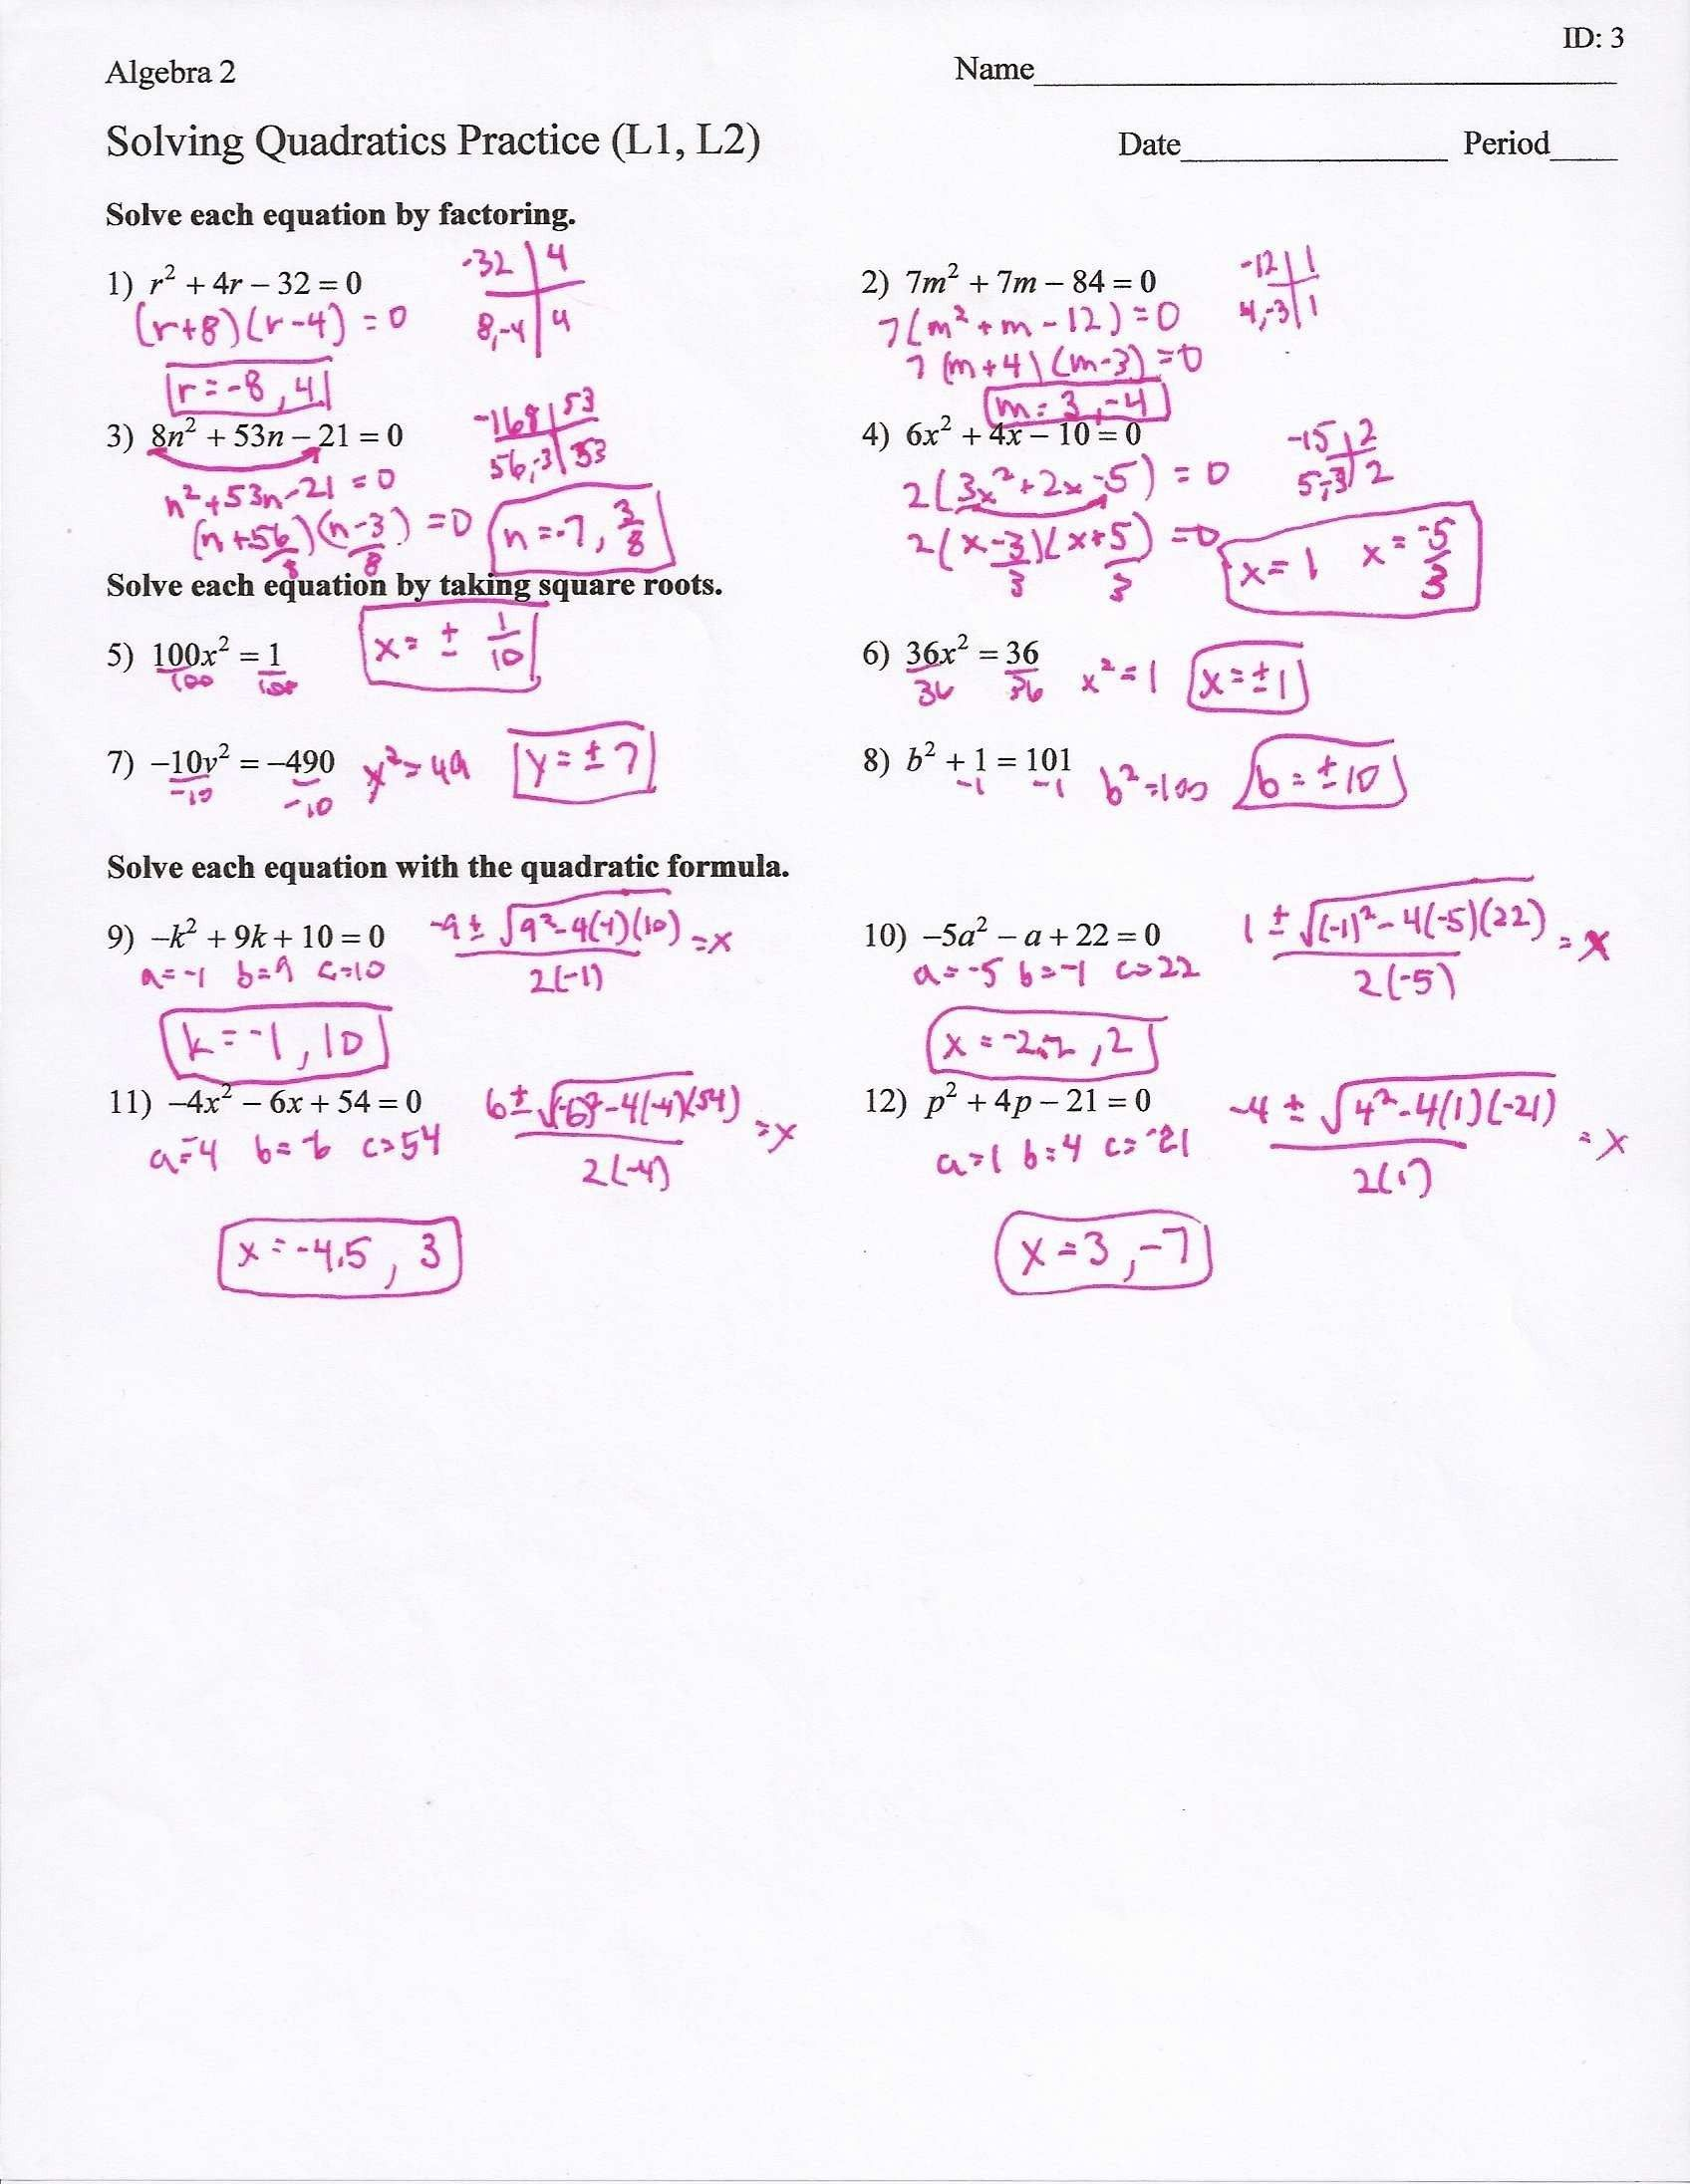 Solving Quadratic Equations Review Answer Key